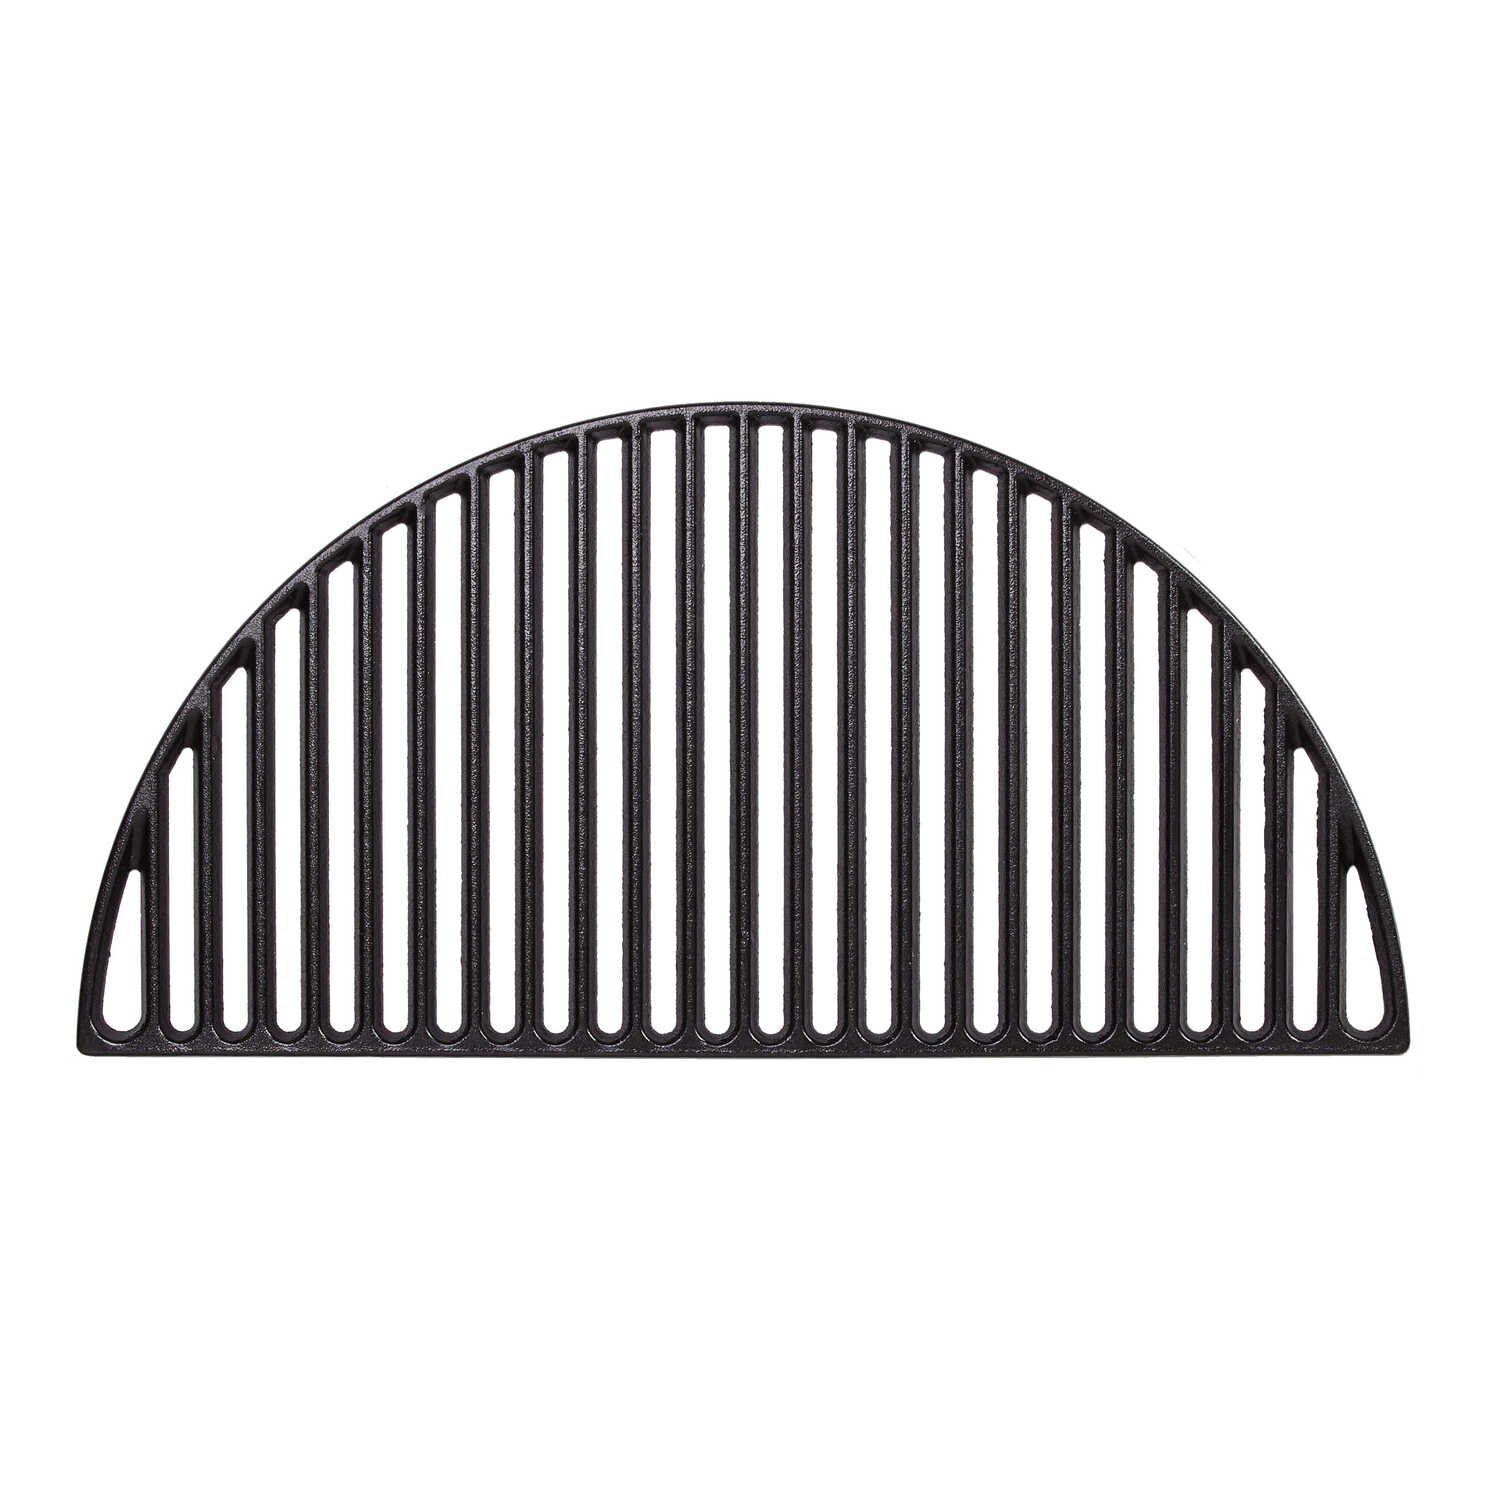 Kamado Joe  Big Joe  Cast Iron  Grill Cooking Grate  12 in. L x 24 in. W